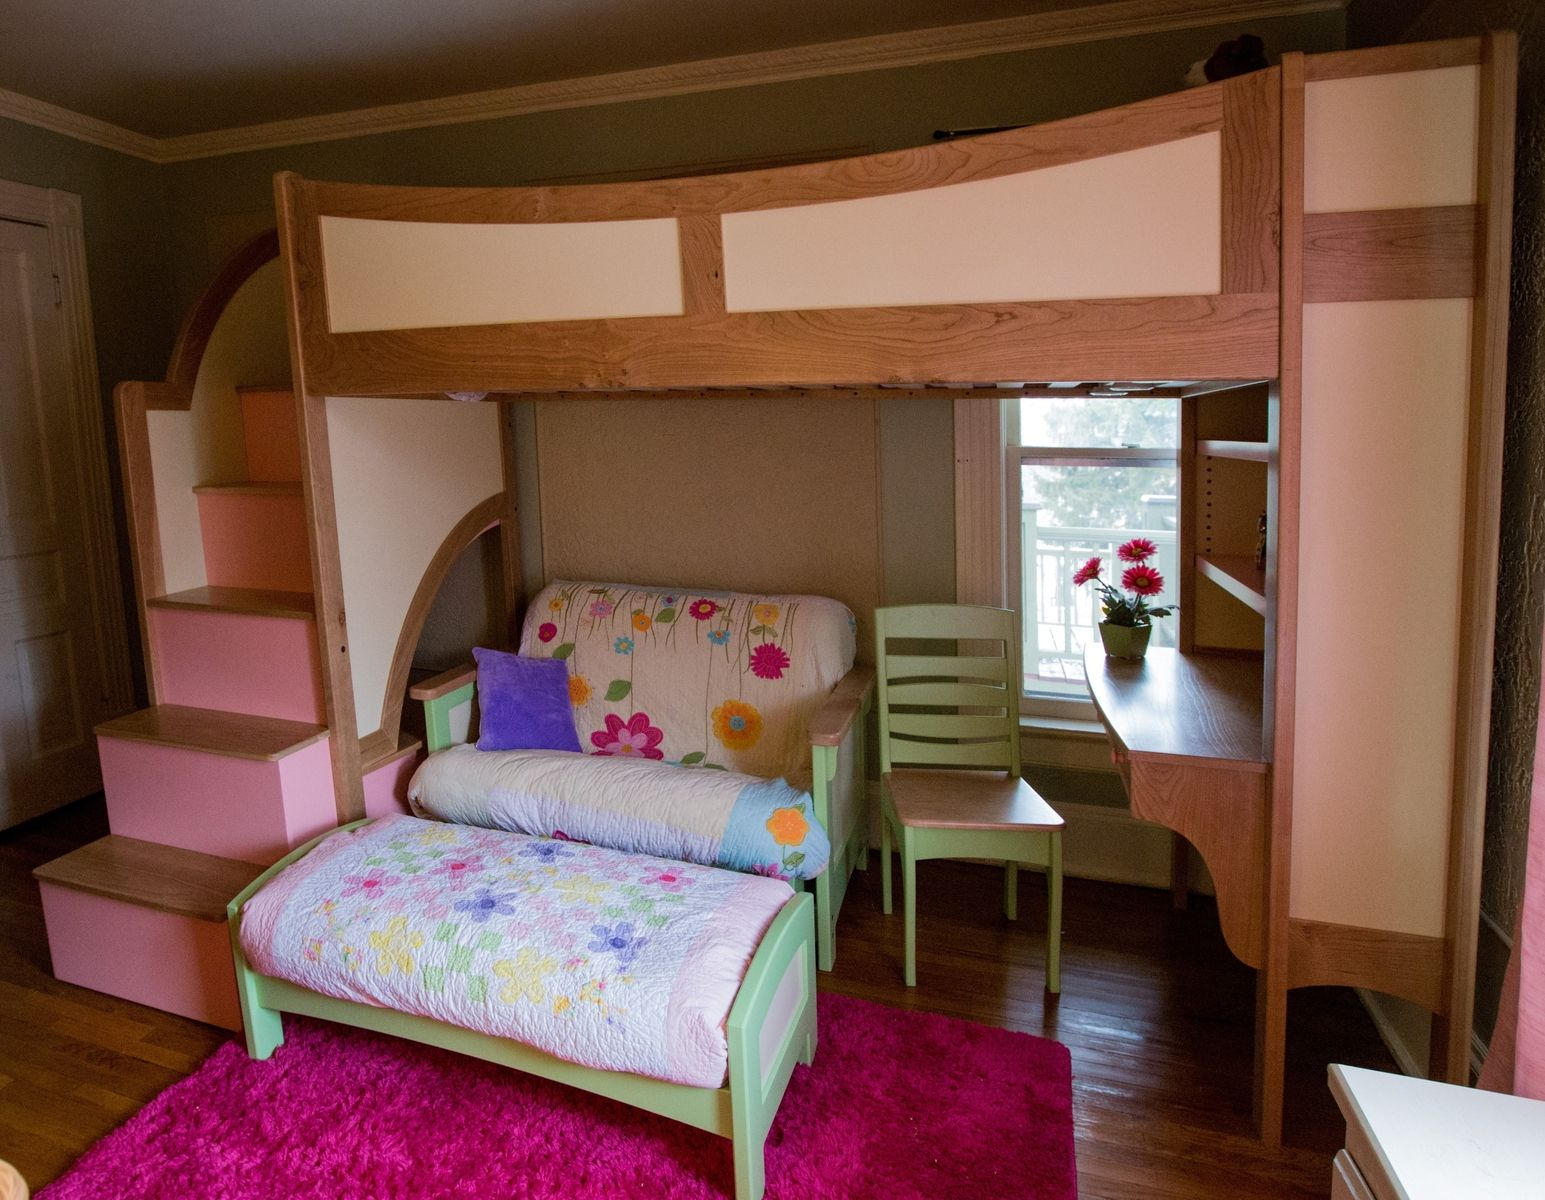 Handmade Girl 39 S Twin Loft Bunk Bed With Stairs Futon And Desk By Sahn Lee Crafts Llc